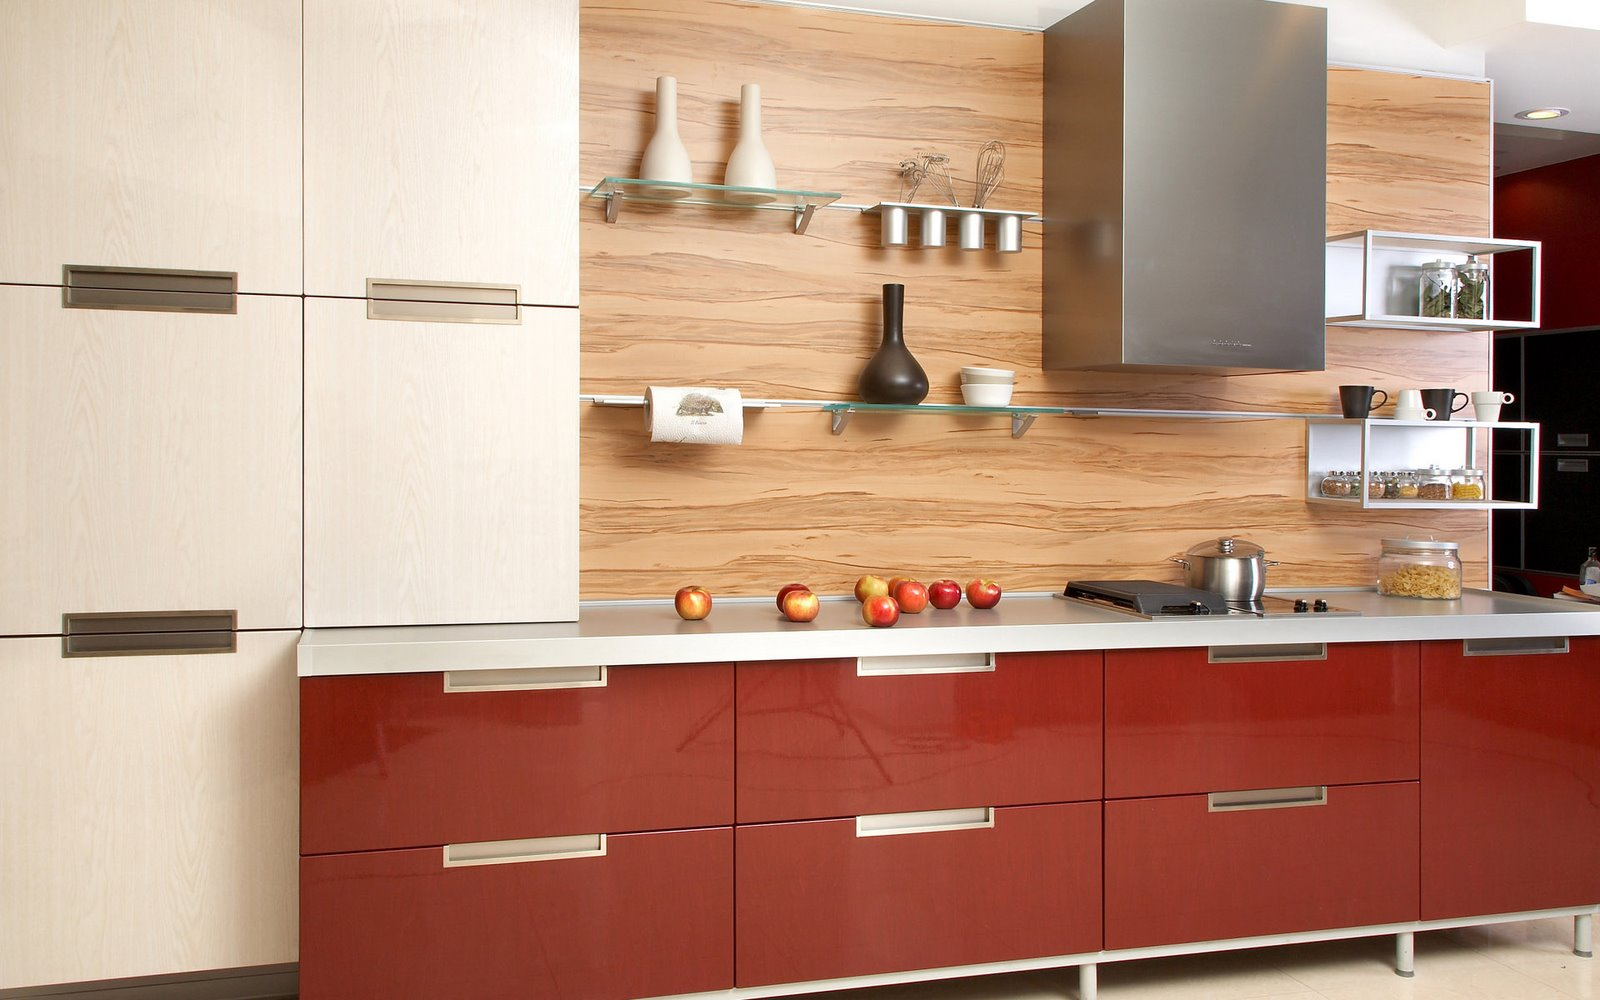 Modern wood kitchen design dream kitchens pinterest for Kitchen cabinets modern style